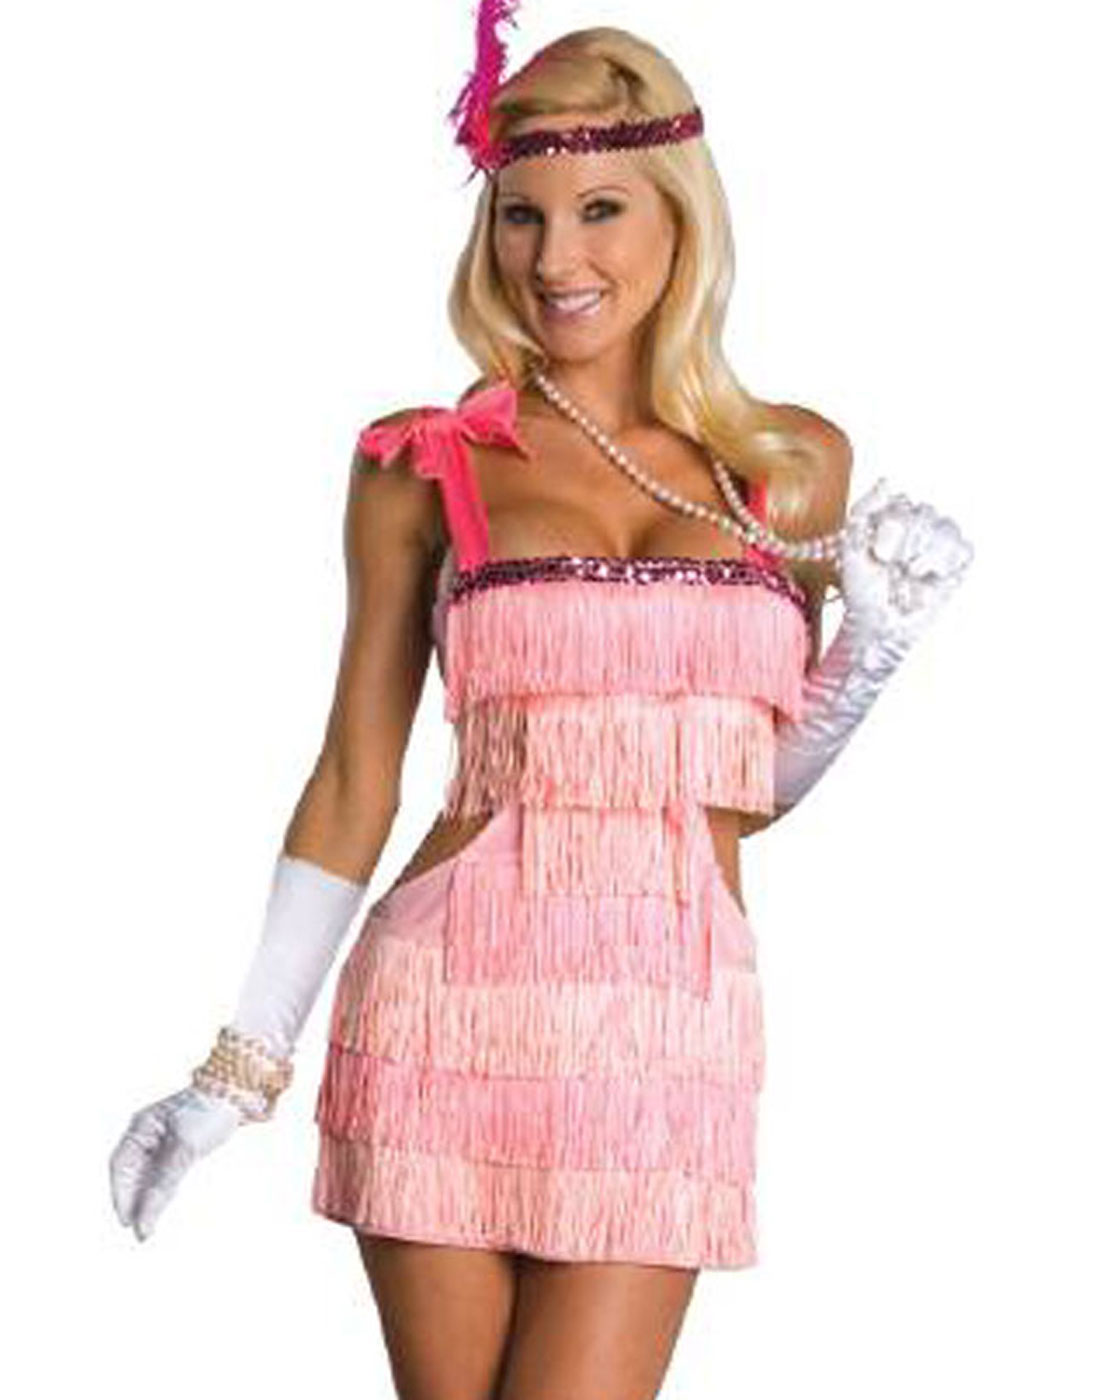 c690651eaf6e6 Details about Sexy Pink 20 S Fashion Flapper Showgirl Womens Halloween  Adult Costume